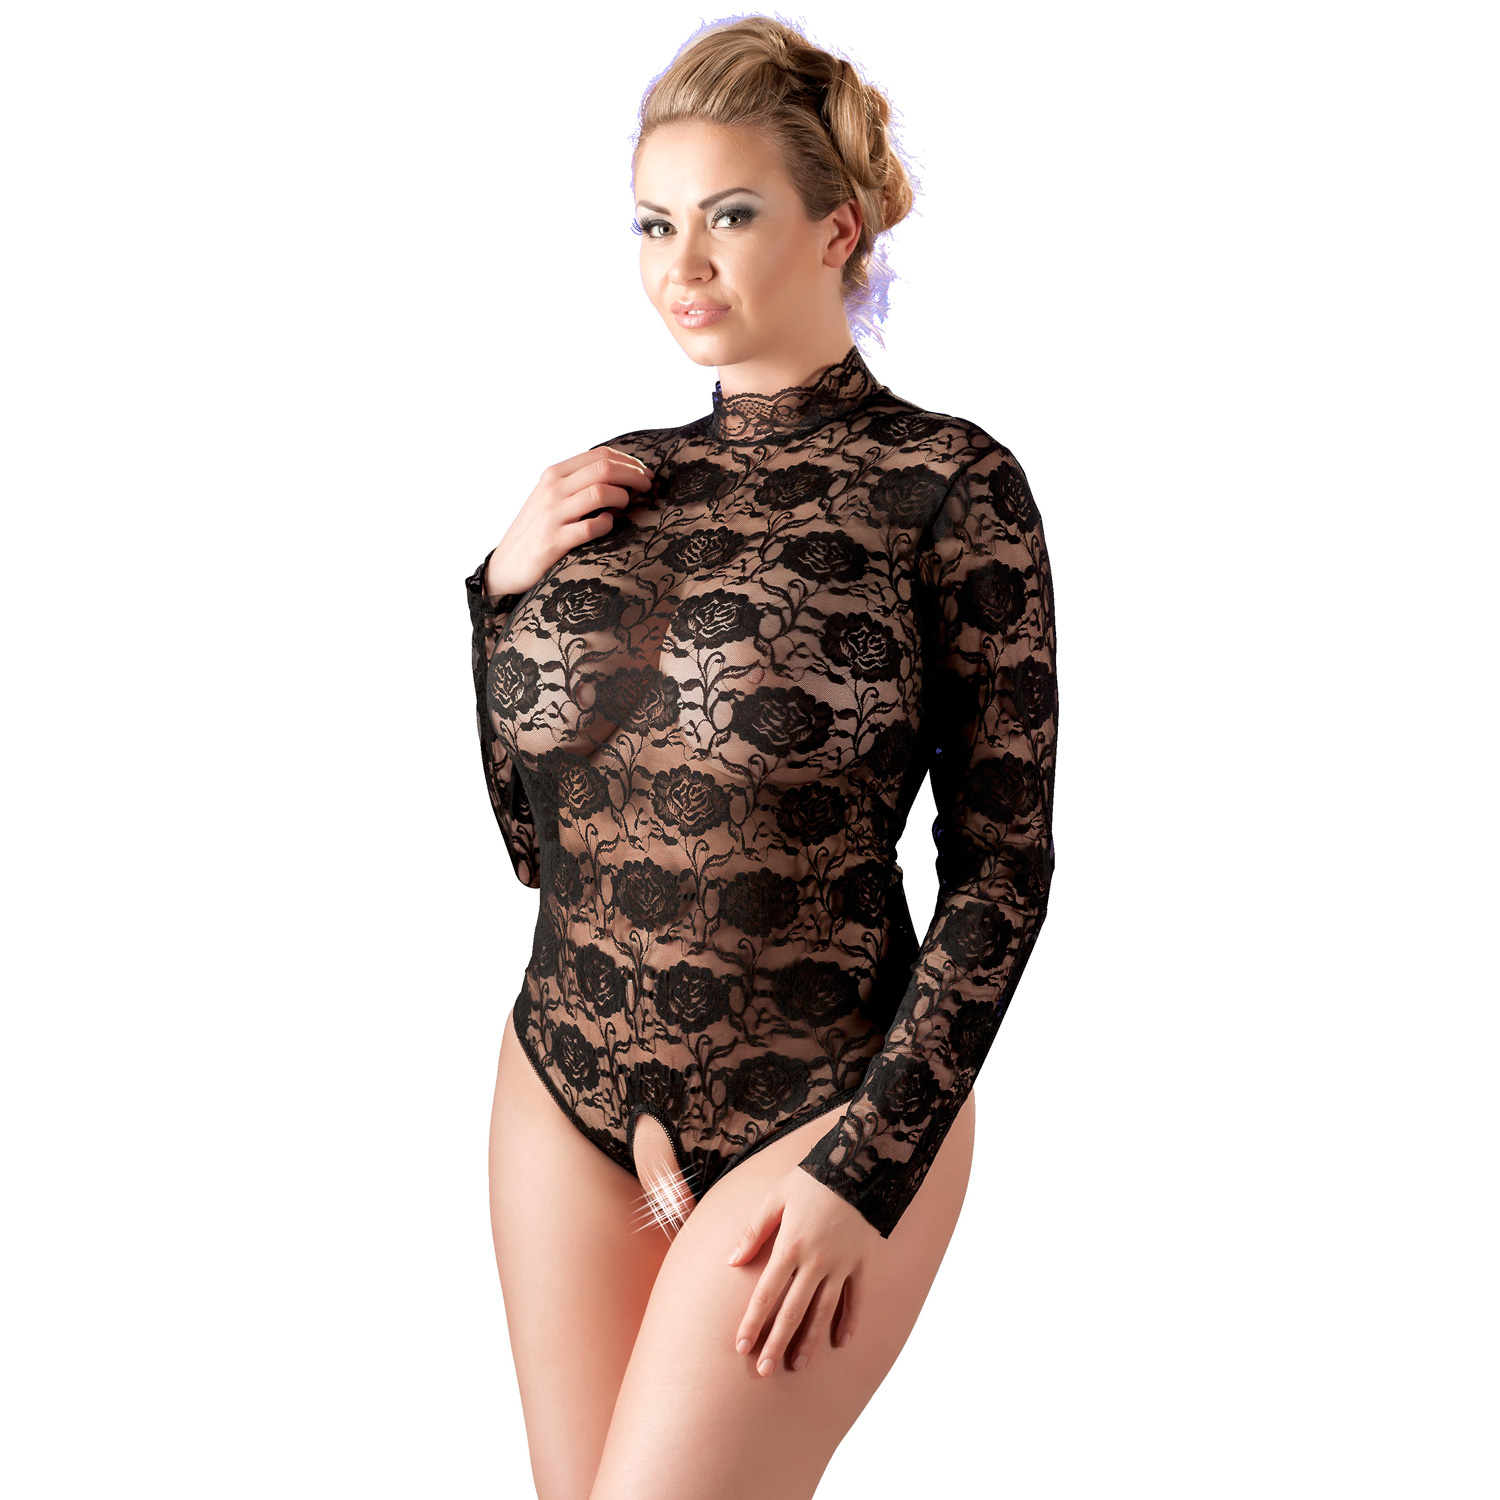 Cottelli Bundløs Blonde Bodystocking med Lange Ærmer Plus Size